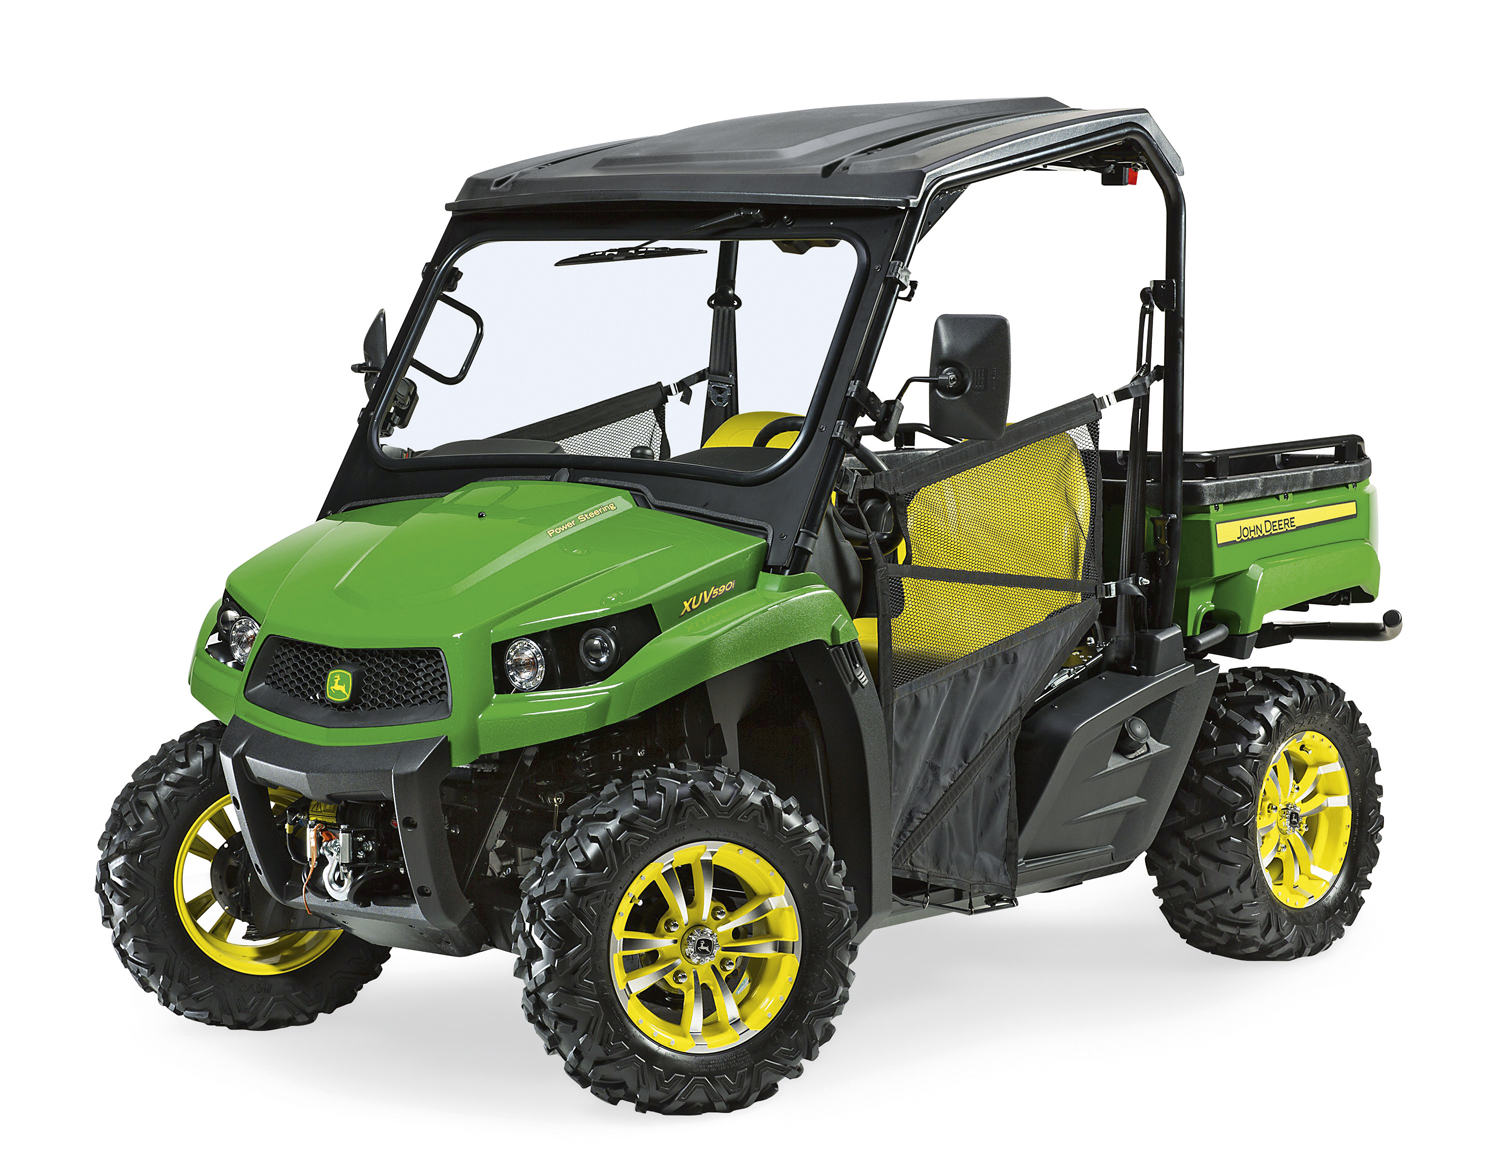 john deere adds three new models to its gator range for 2016 agriland. Black Bedroom Furniture Sets. Home Design Ideas